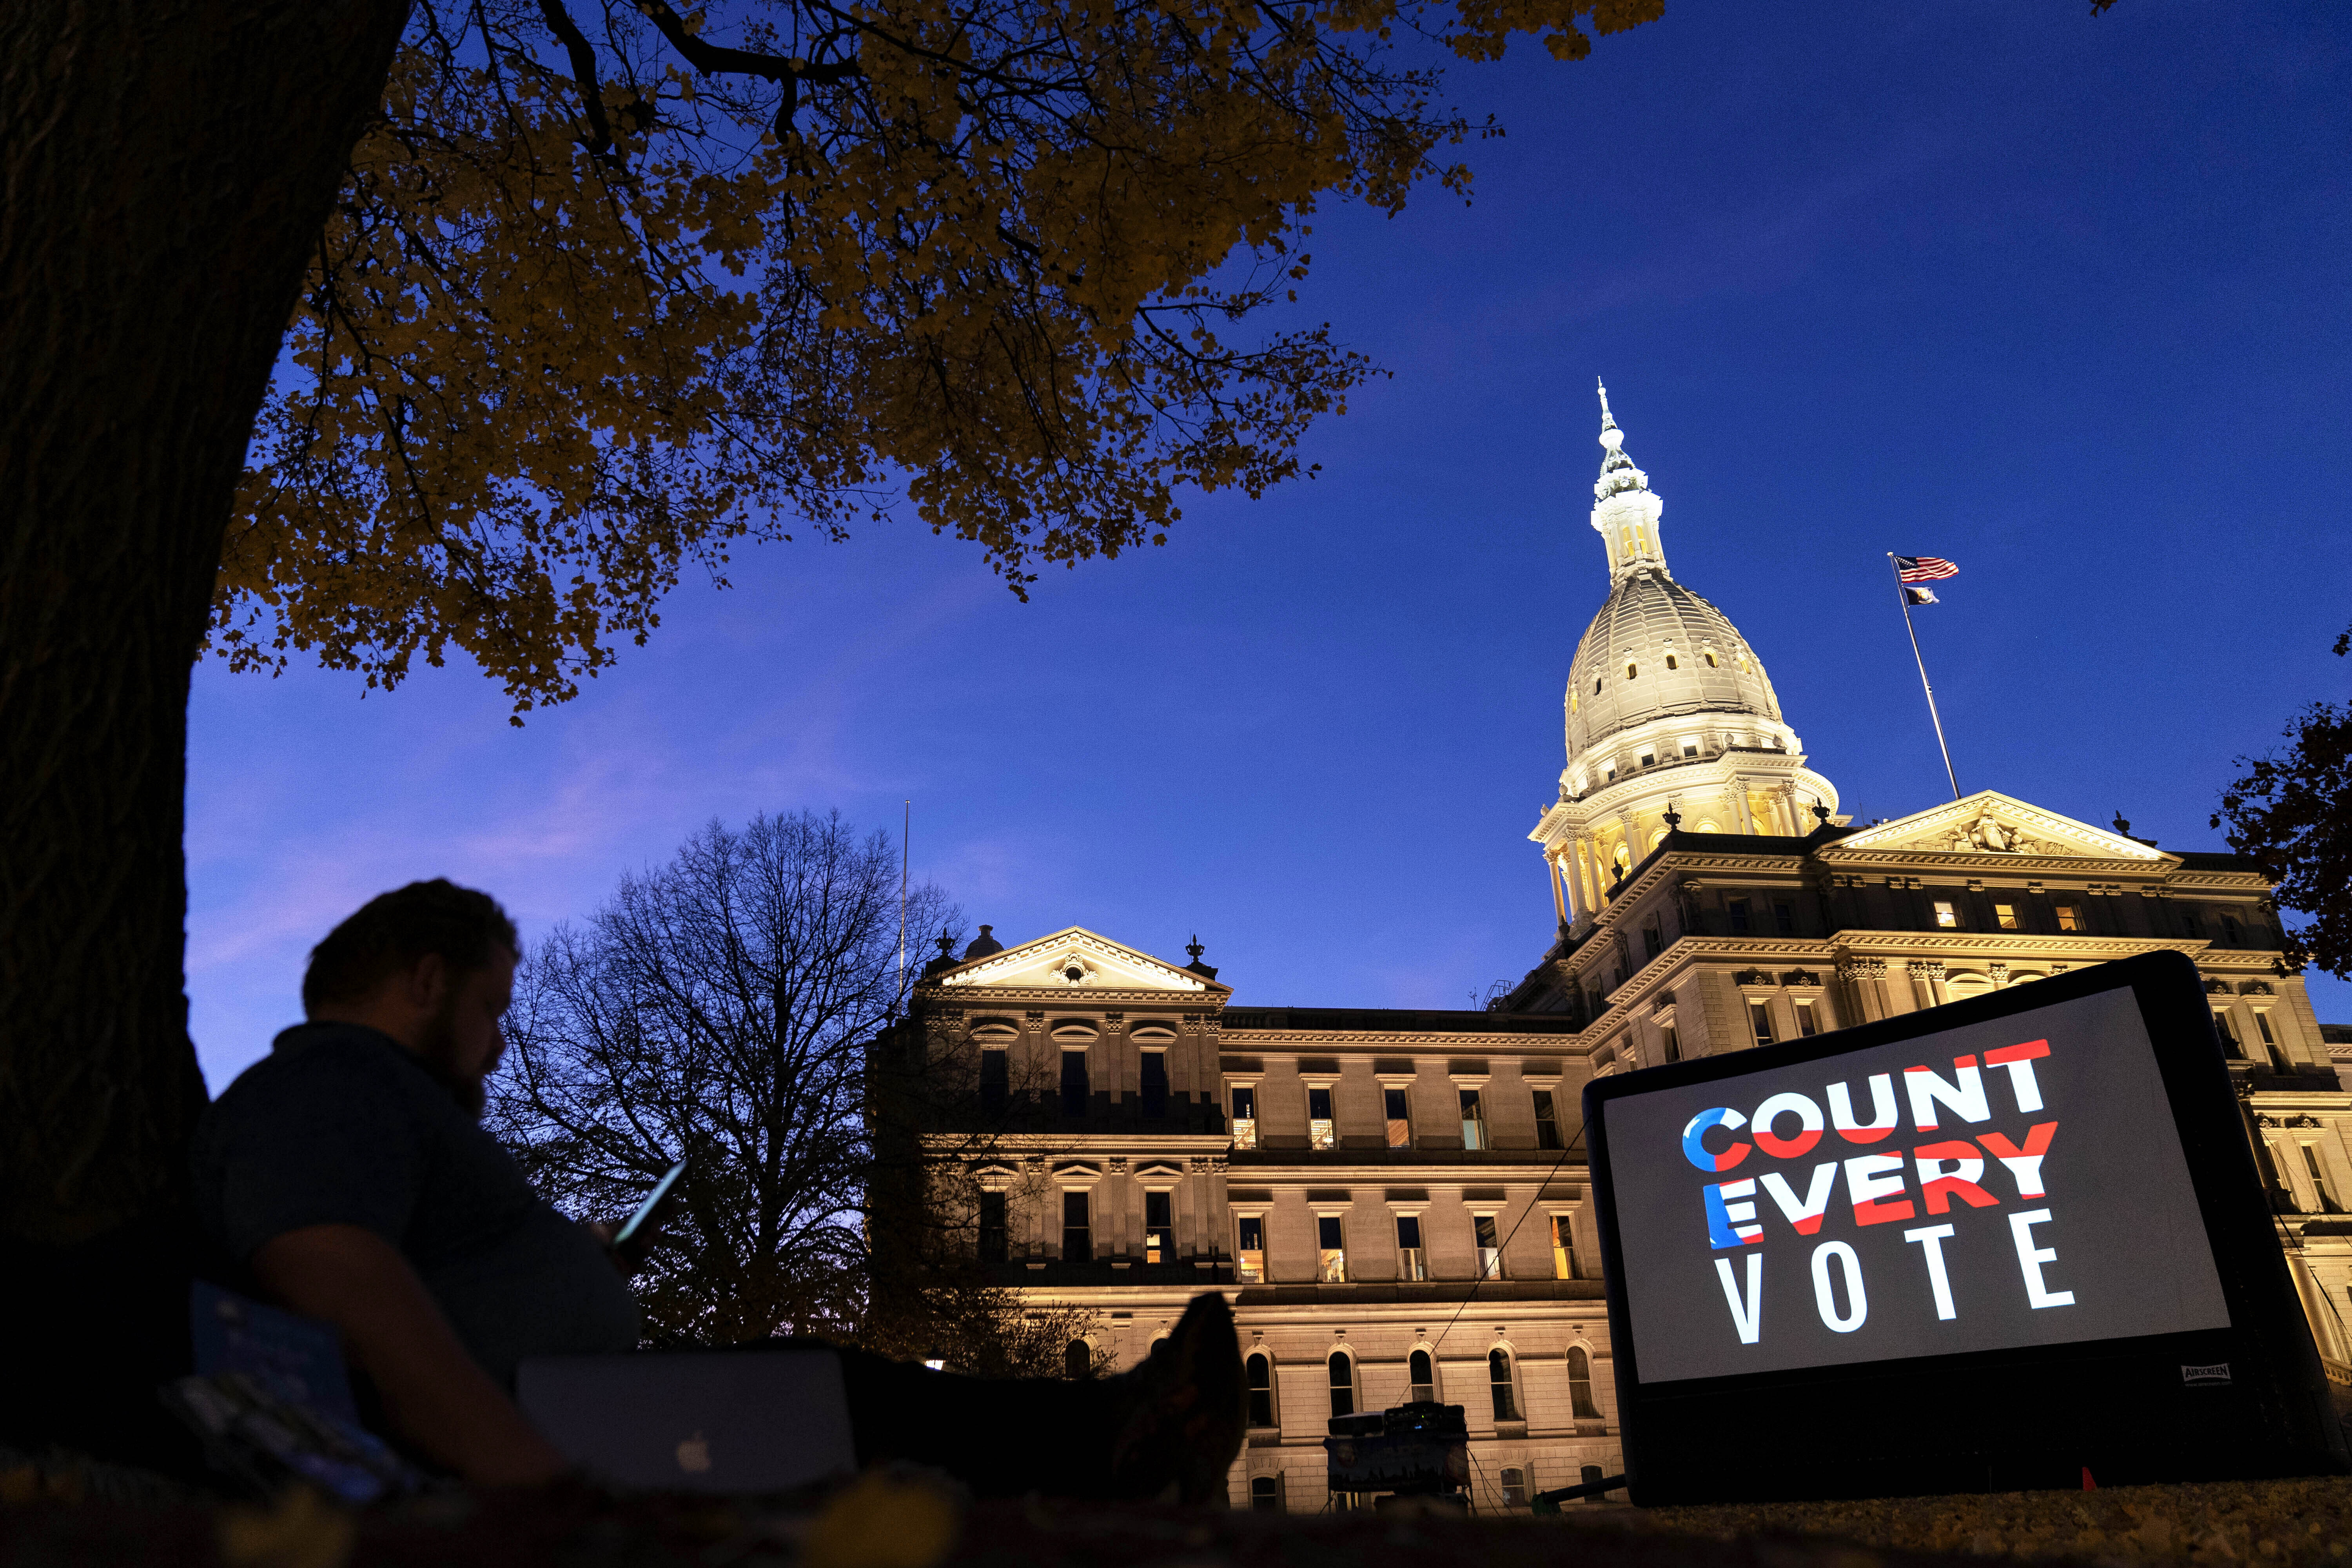 """In this Nov. 6, 2020, file photo, the phrase """"Count Every Vote"""" is displayed on a large screen, organized by an advocacy group in front of thesState Capitol while election results in several states had yet to be finalized, in Lansing, Mich."""